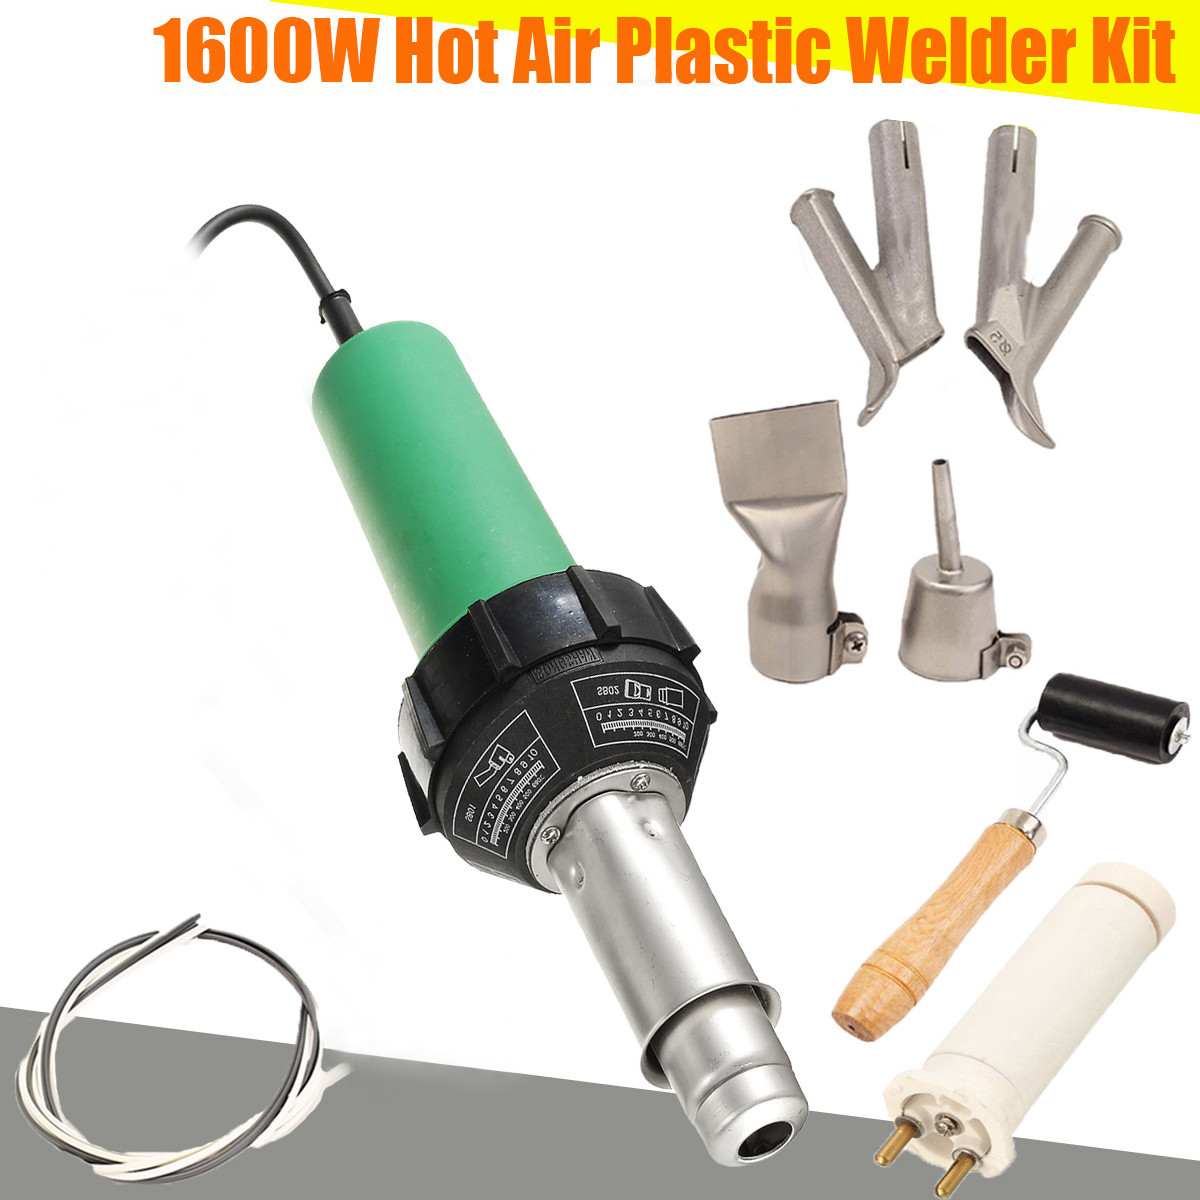 220V 1600W 3000Pa Plastic Integrated Welders Hot Air Welding Torch G un Heating Core Set + 2pcs Speed Nozzle +Roller